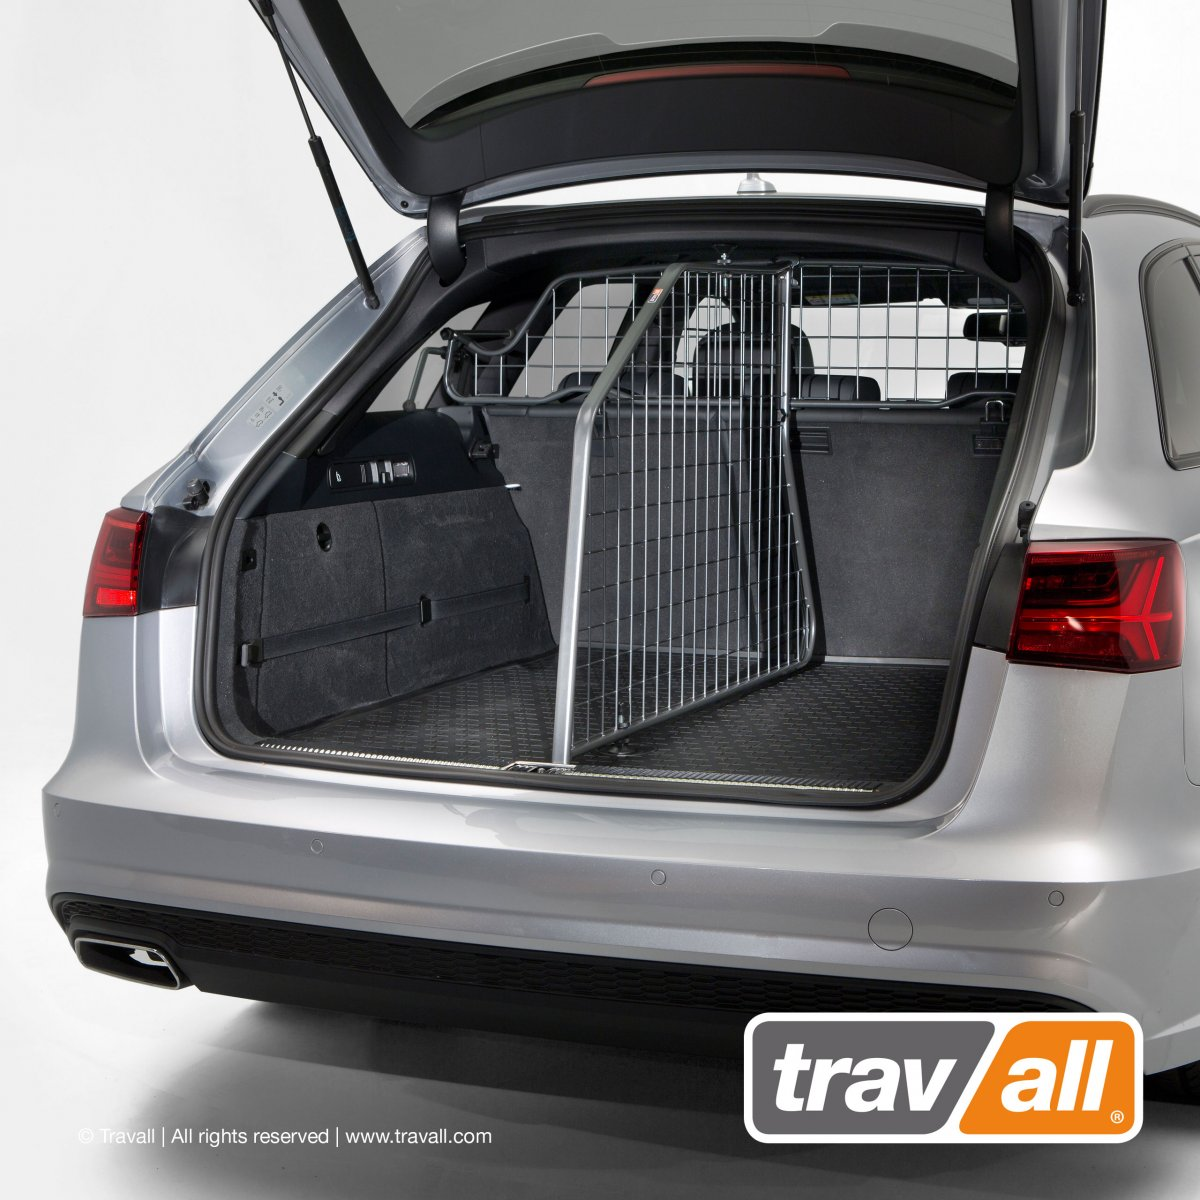 Travall® DIVIDER pour Audi A6 Avant (2011-) / S6/Allroad (2012-) / RS6 (2013-)